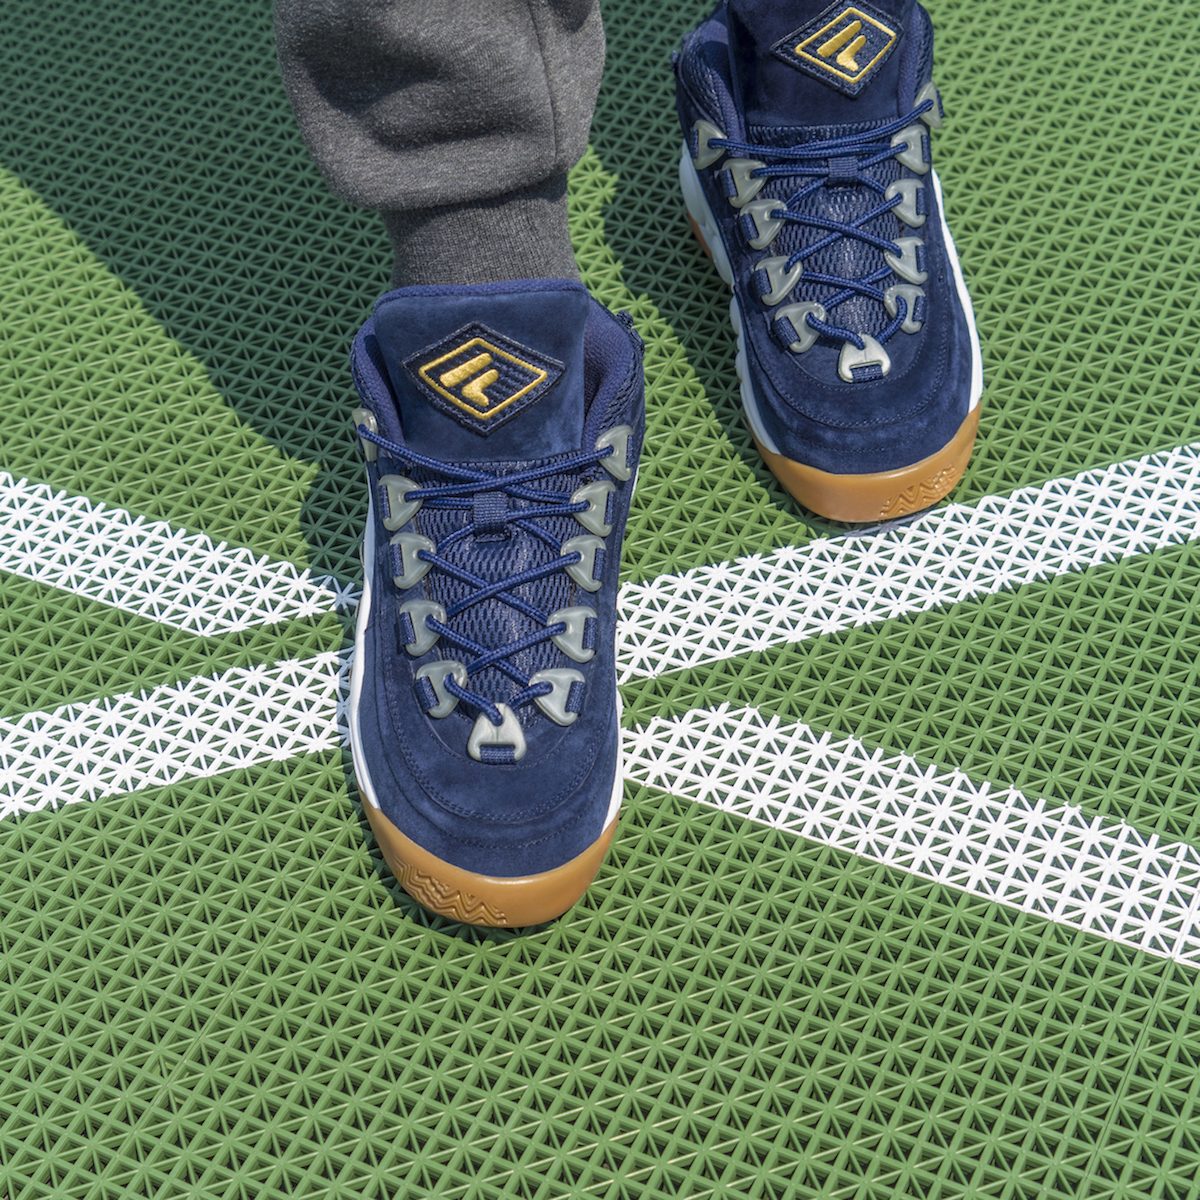 FILA Bubbles royal beginnings 1